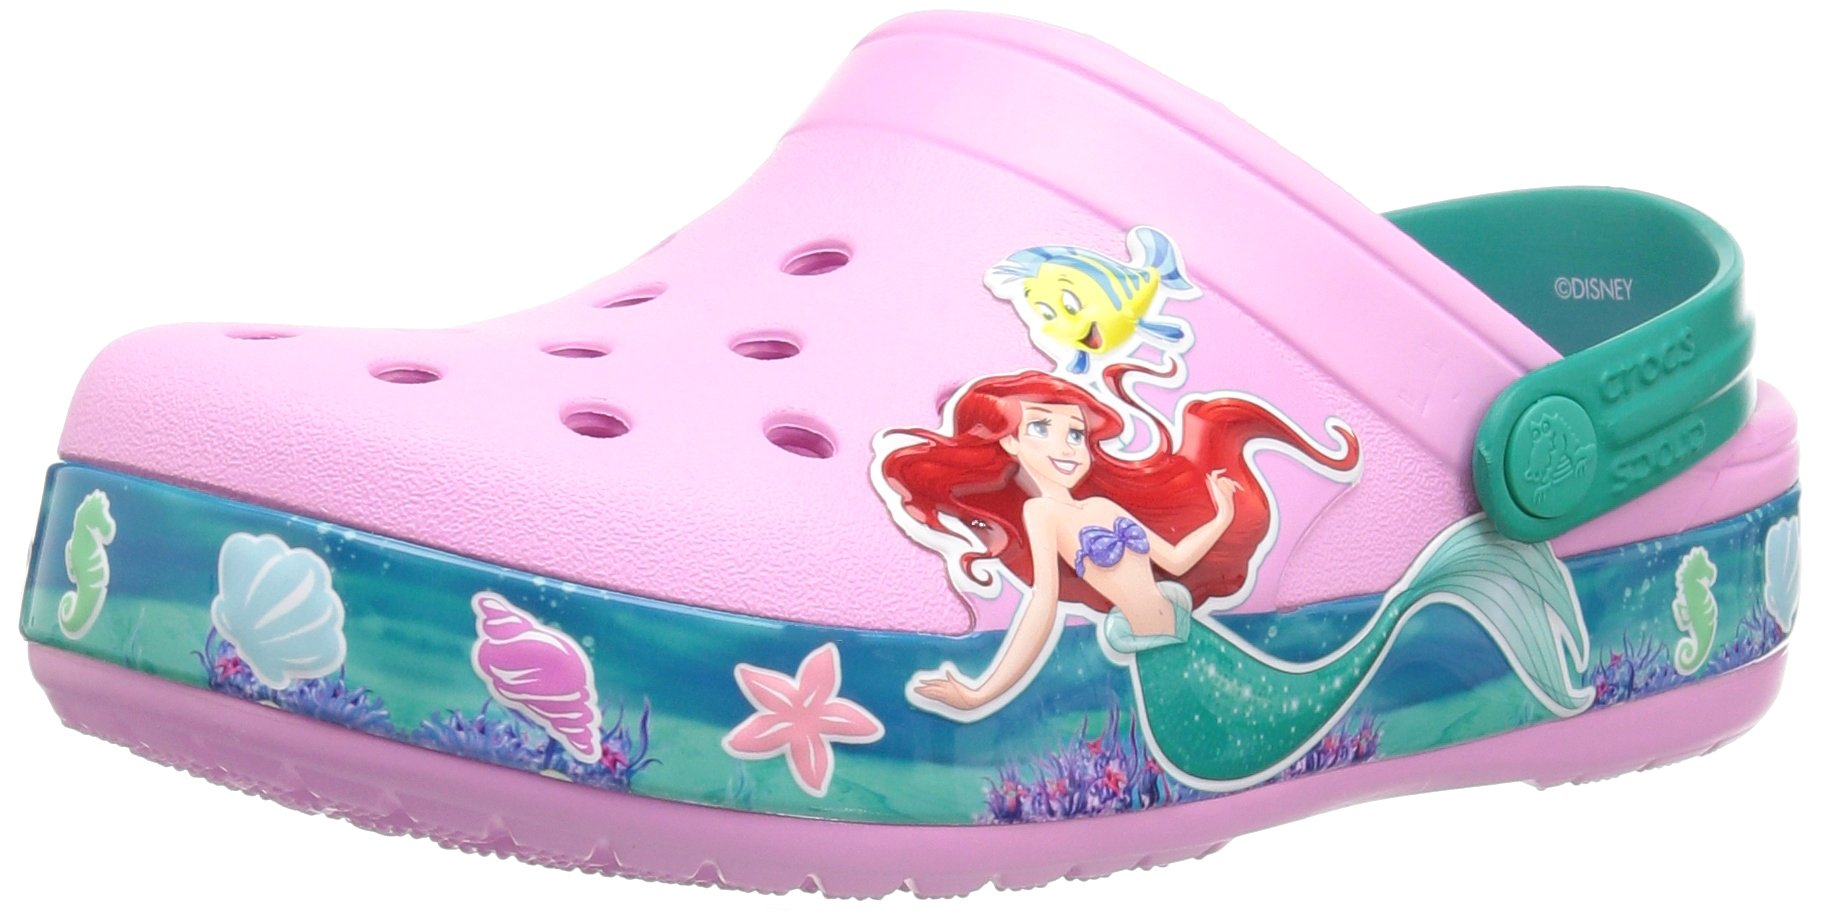 Crocs Unisex-Kids  CB Princess Ariel Clog K , carnation , C10 M US Toddler by Crocs (Image #1)